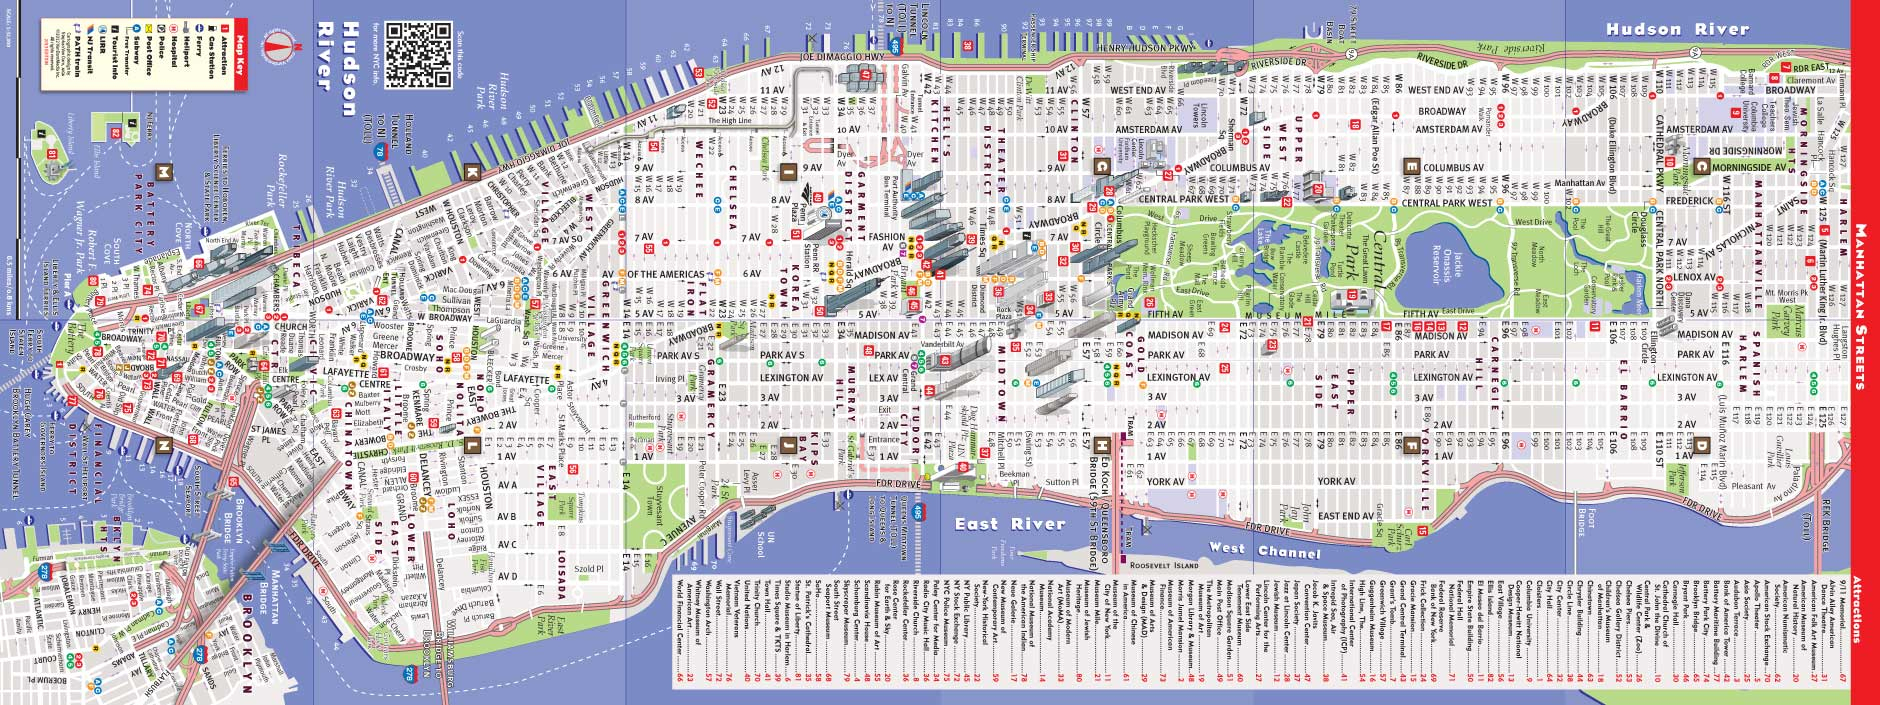 Manhattan New York Map Street Map Midtown New York City Streets Map - Printable Street Map Of Midtown Manhattan